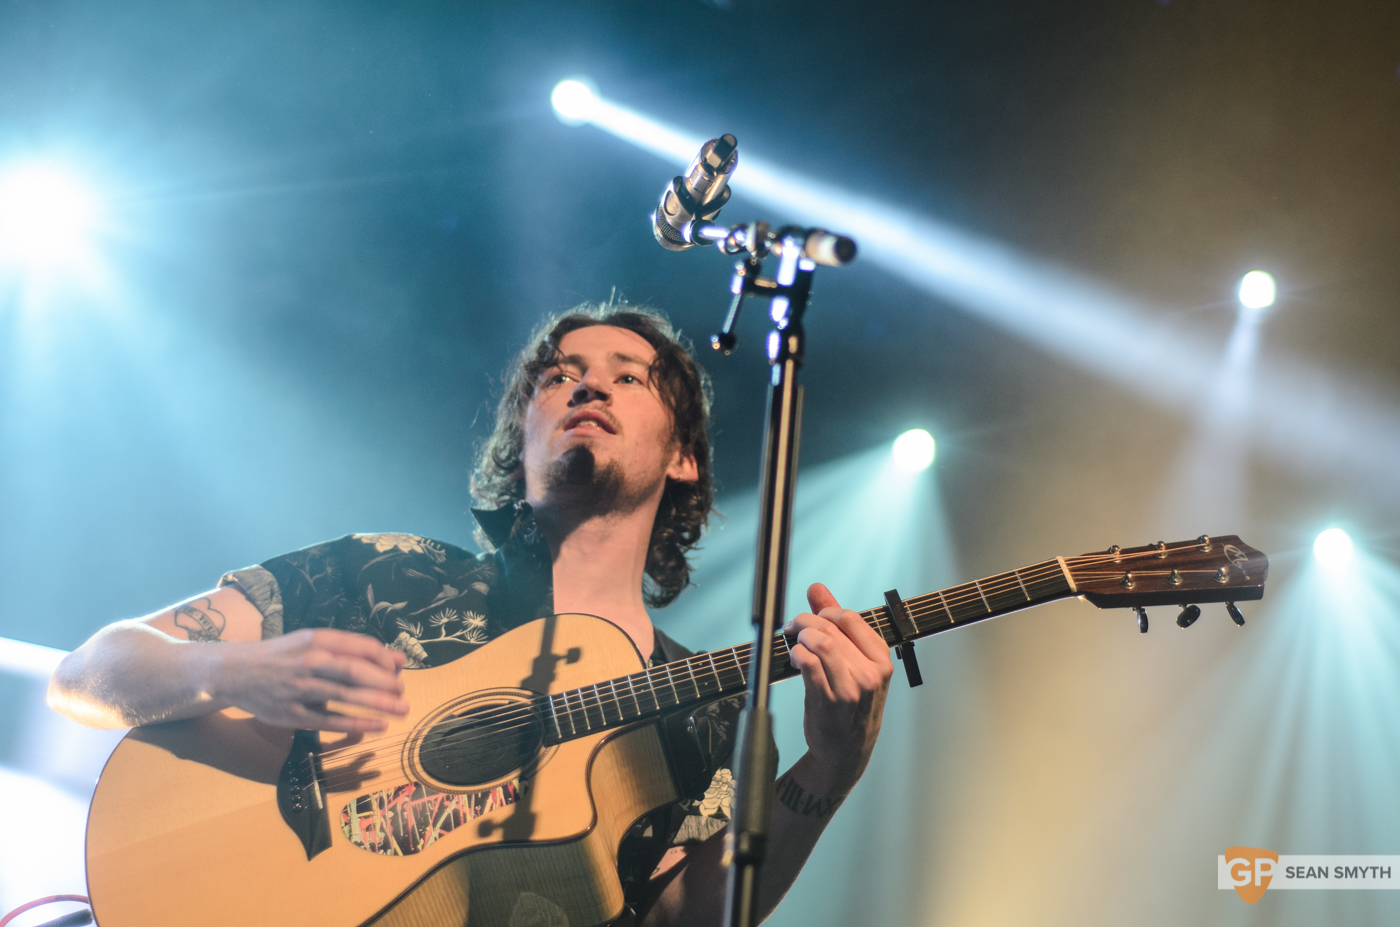 picture-this-at-the-olympia-theatre-by-sean-smyth-2-11-16-5-of-20